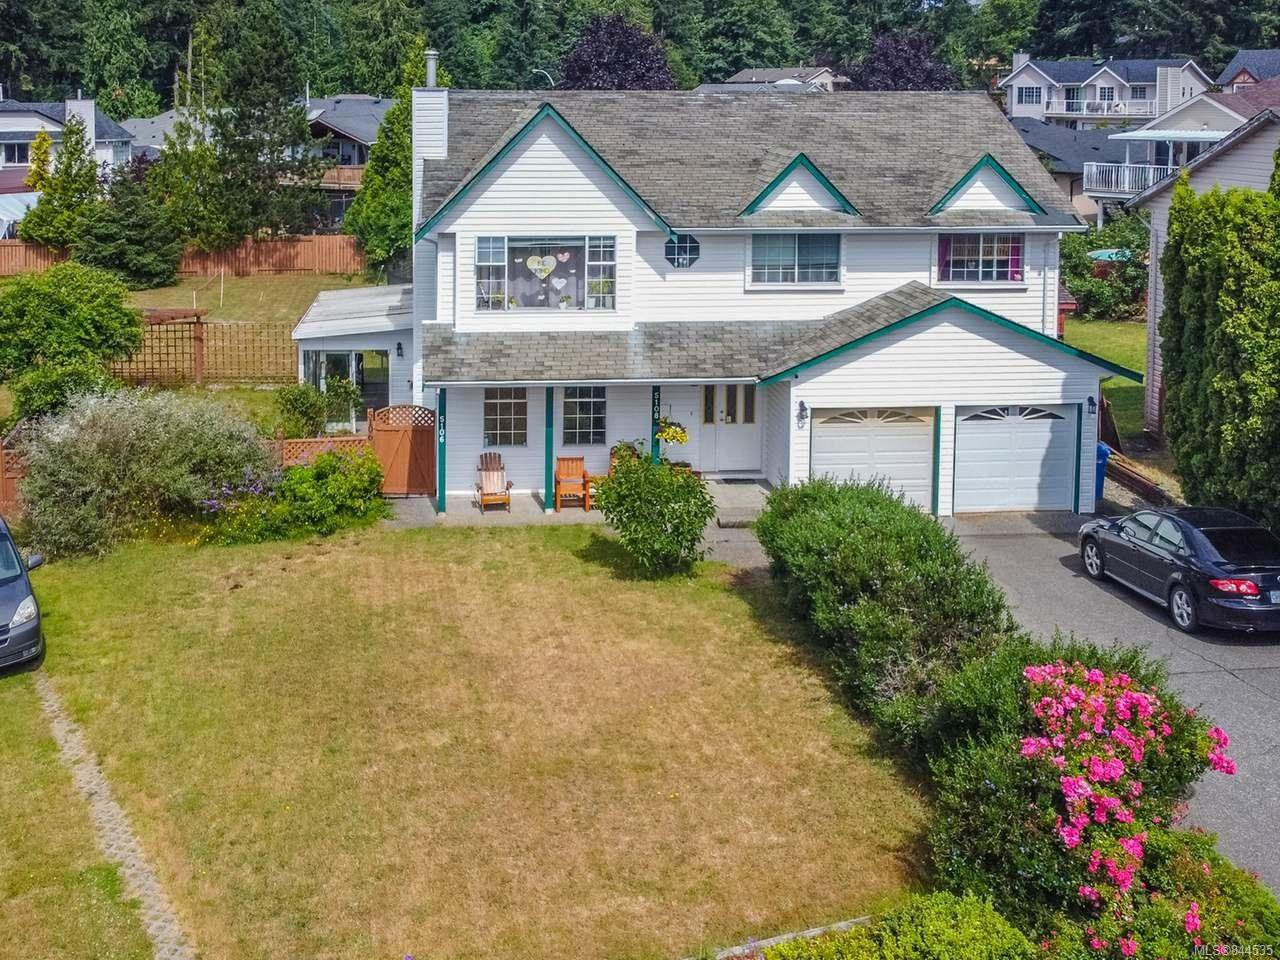 Main Photo: 5108 Sedona Way in NANAIMO: Na Pleasant Valley House for sale (Nanaimo)  : MLS®# 844535